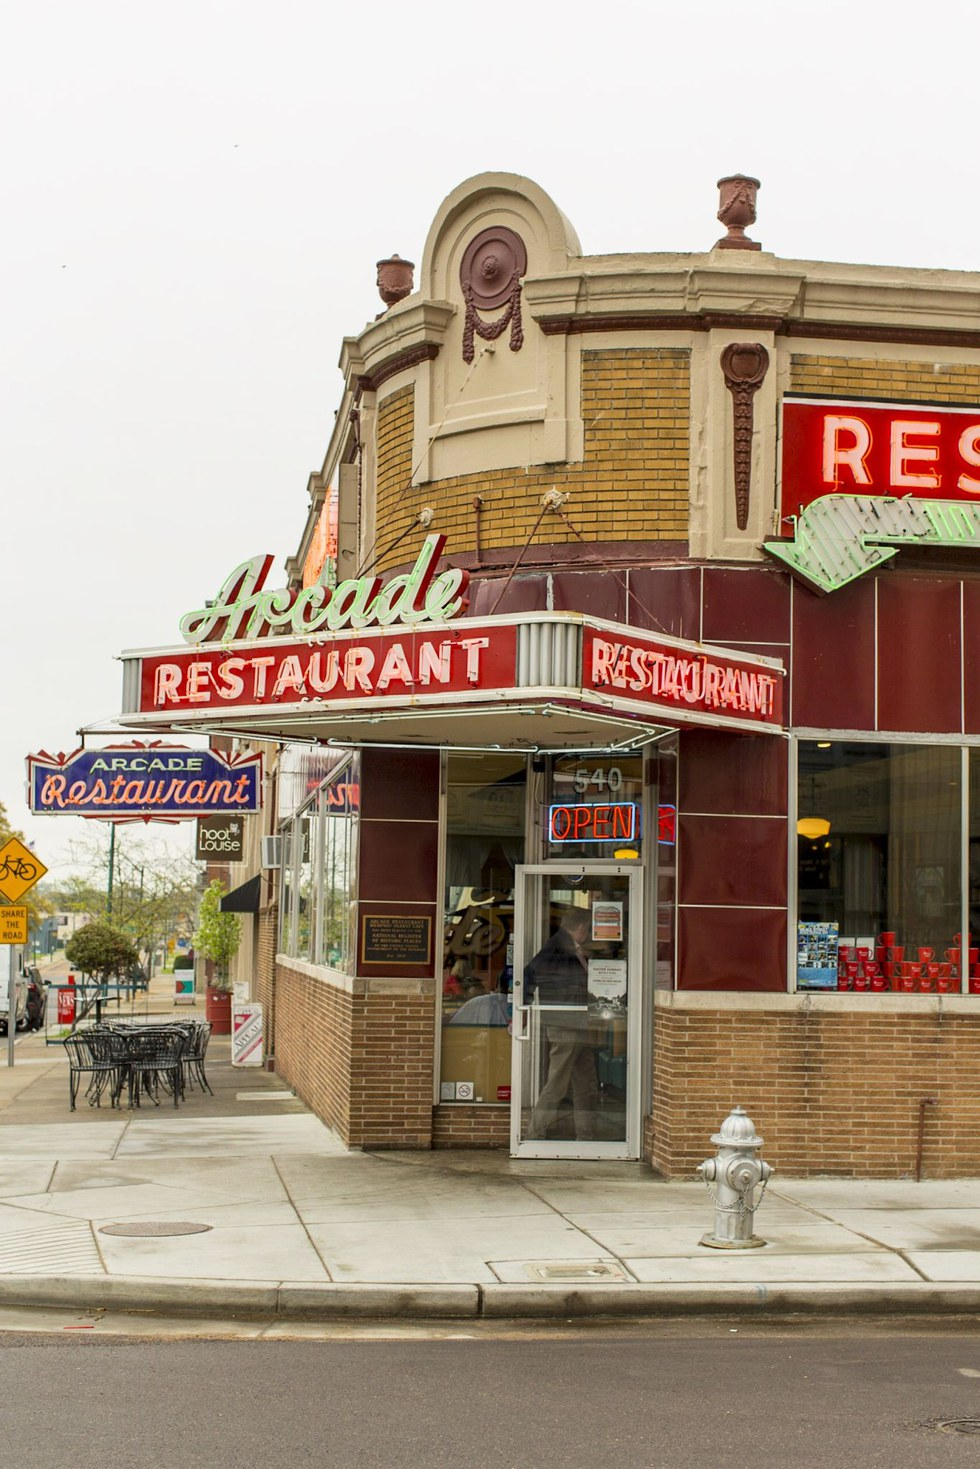 The Arcade, Memphis' oldest restaurant